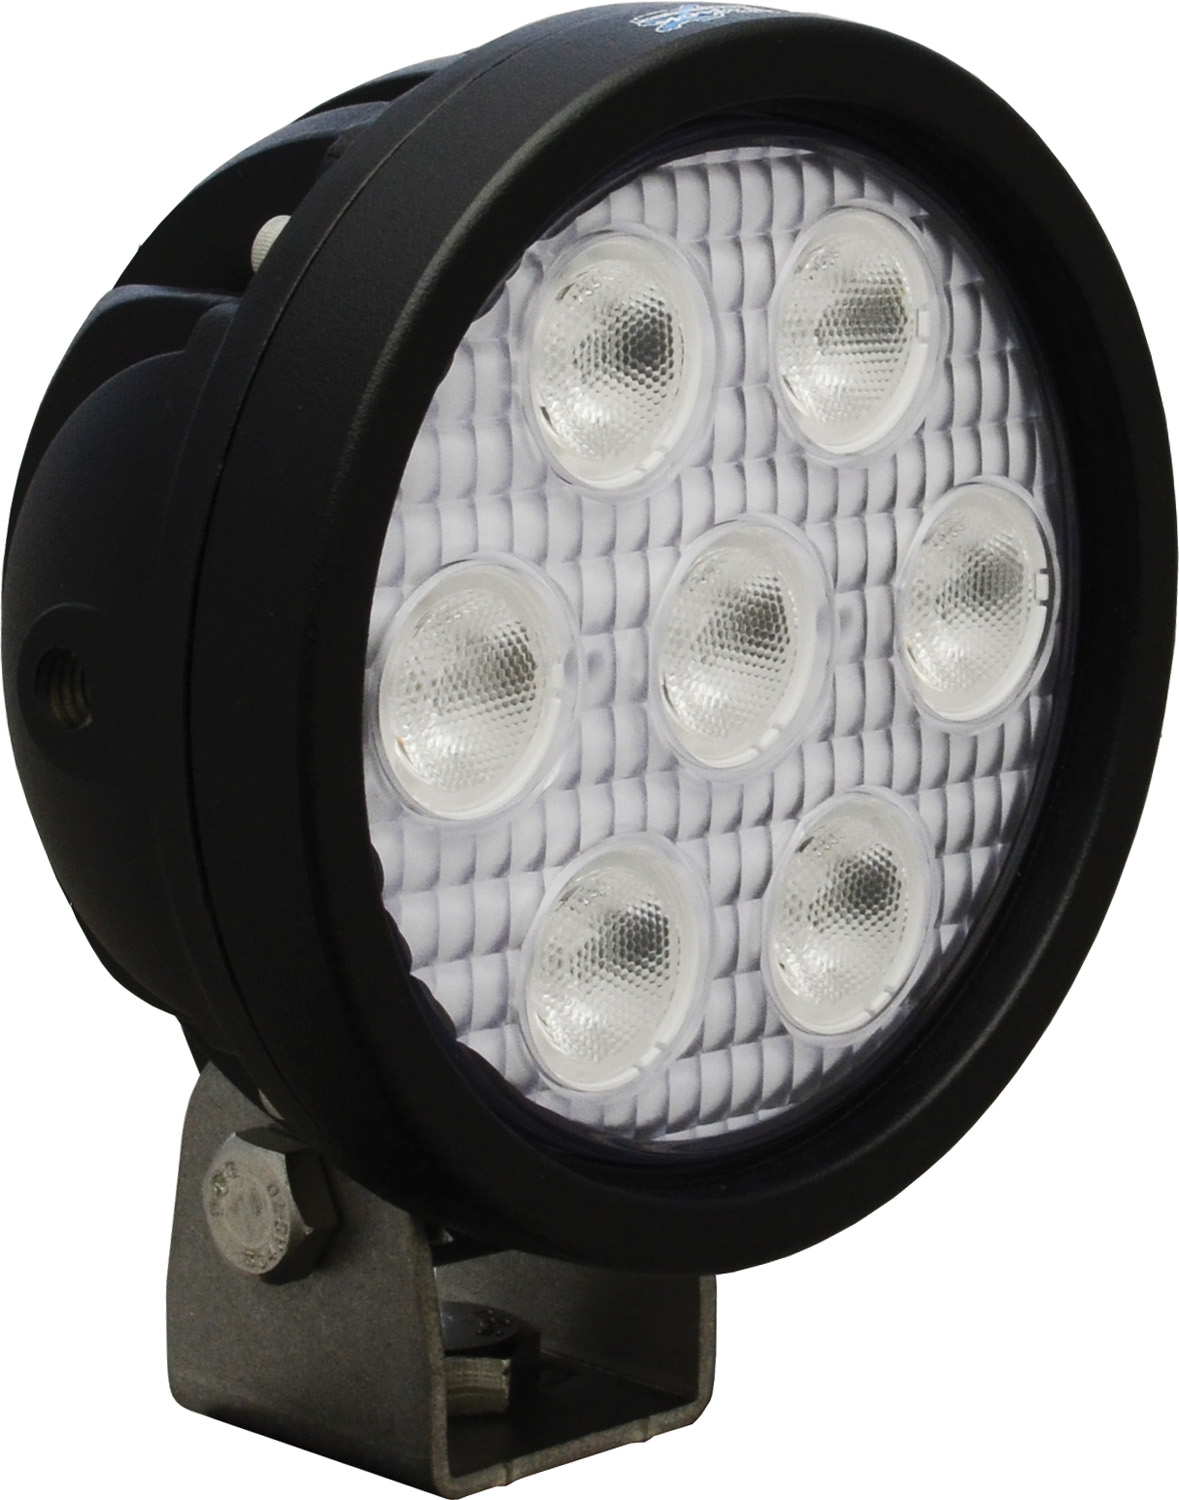 "4"" ROUND UTILITY MARKET BLACK 7 3W RED LED'S 40? WIDE"